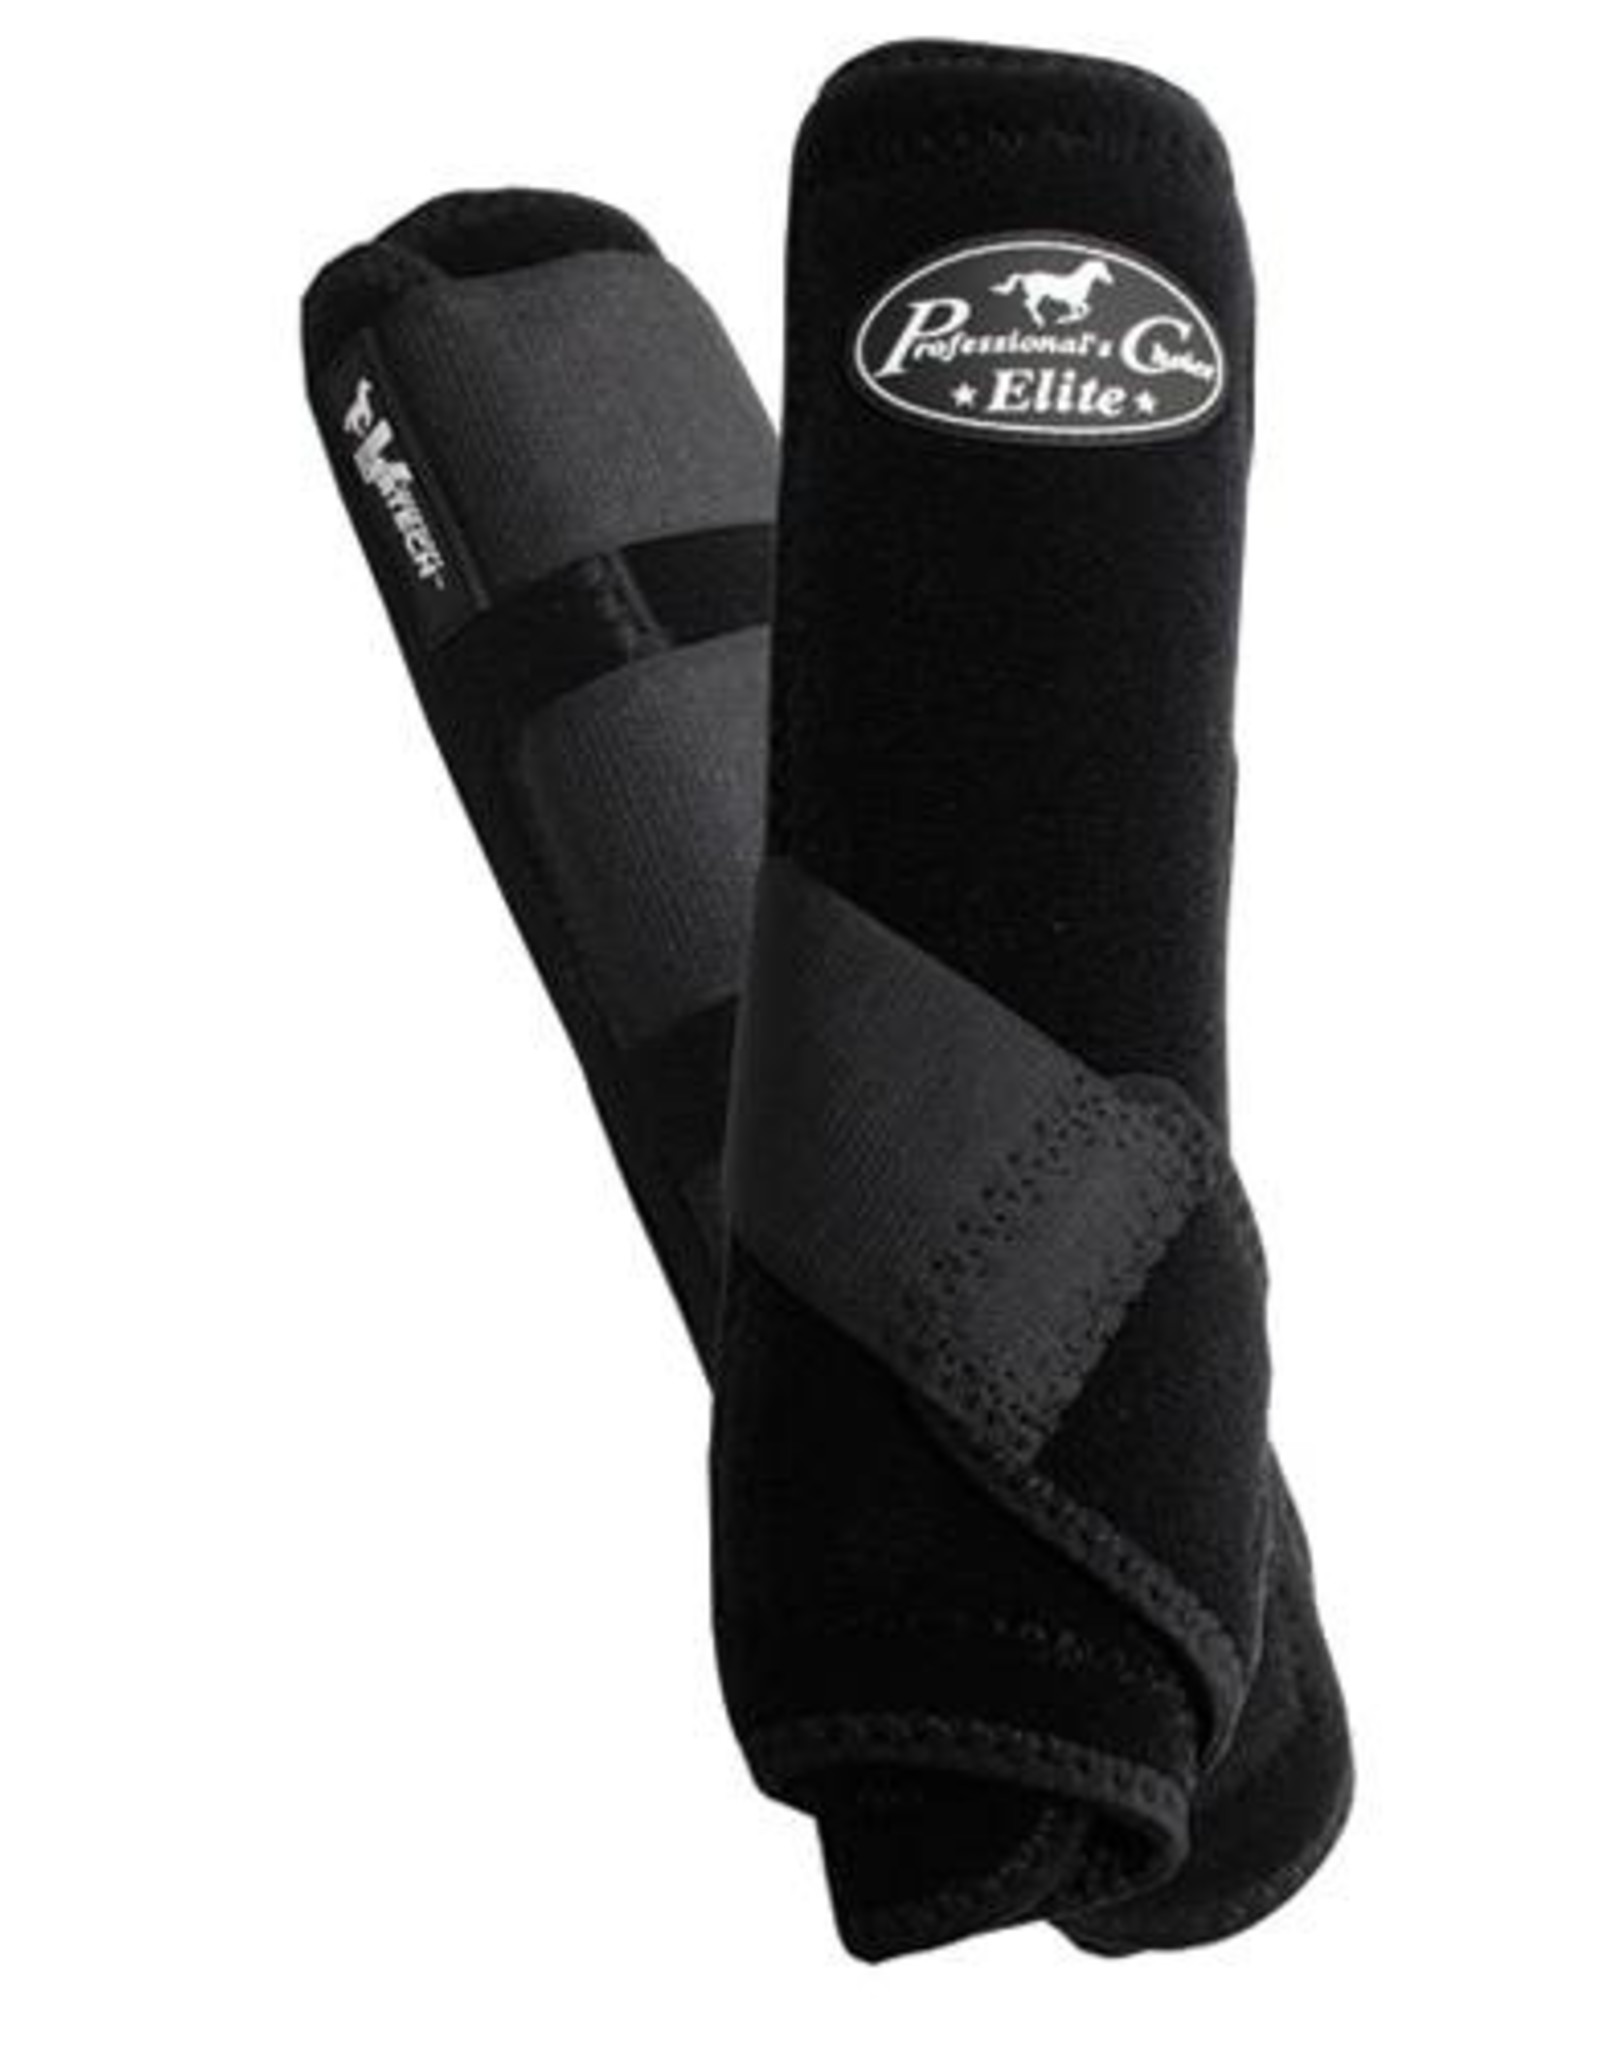 Professional's Choice VenTECH Elite SMB Hind Boot